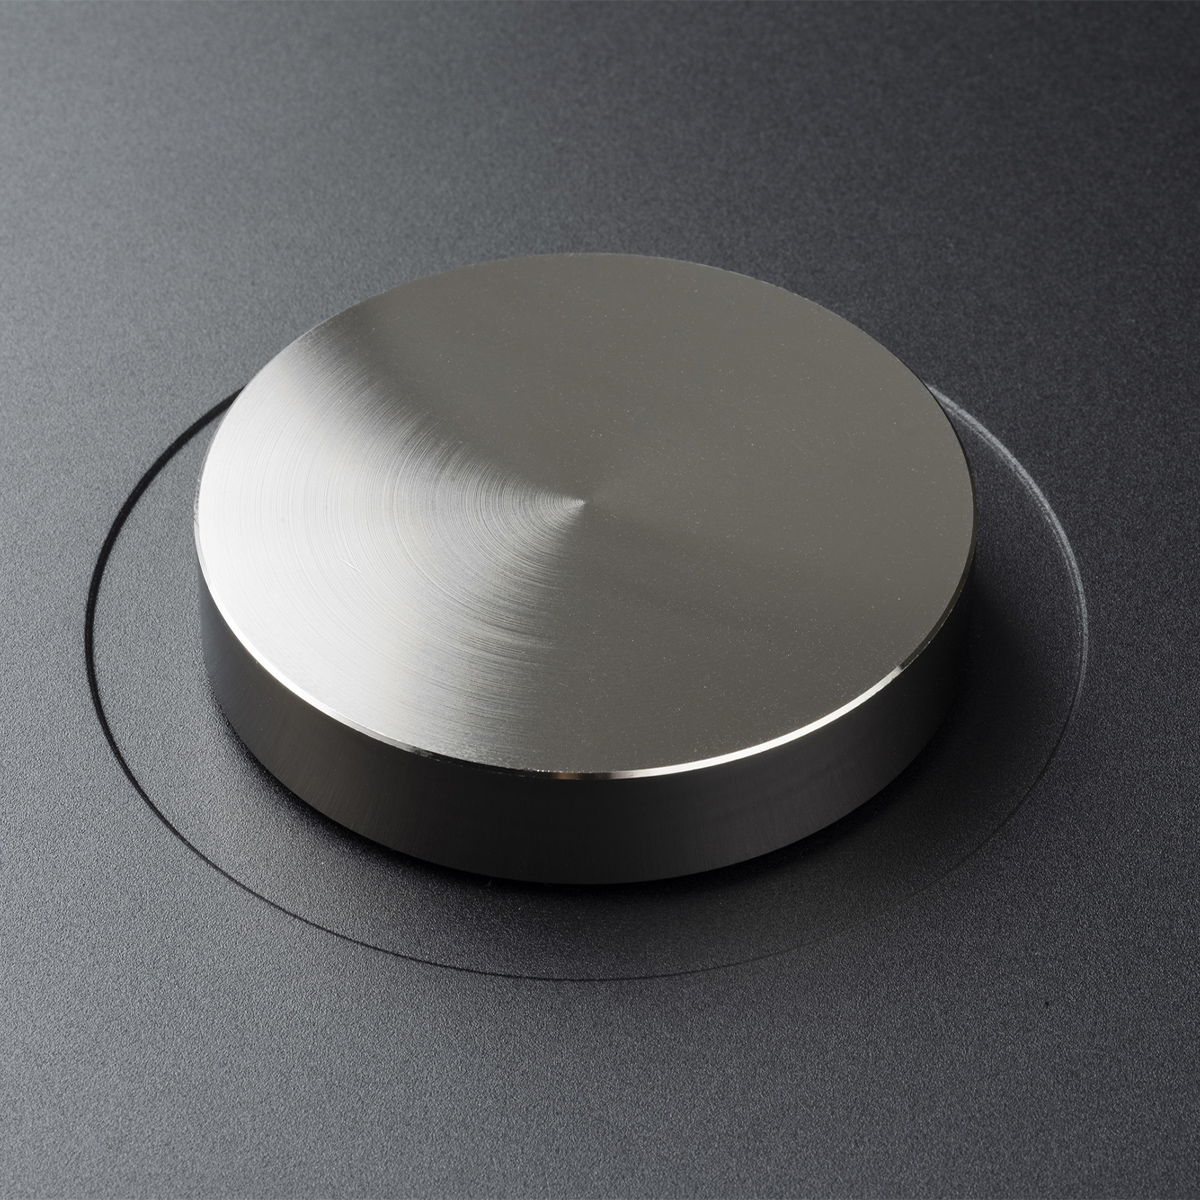 Pro Ject Record Puck Lifestyle Life Style Store